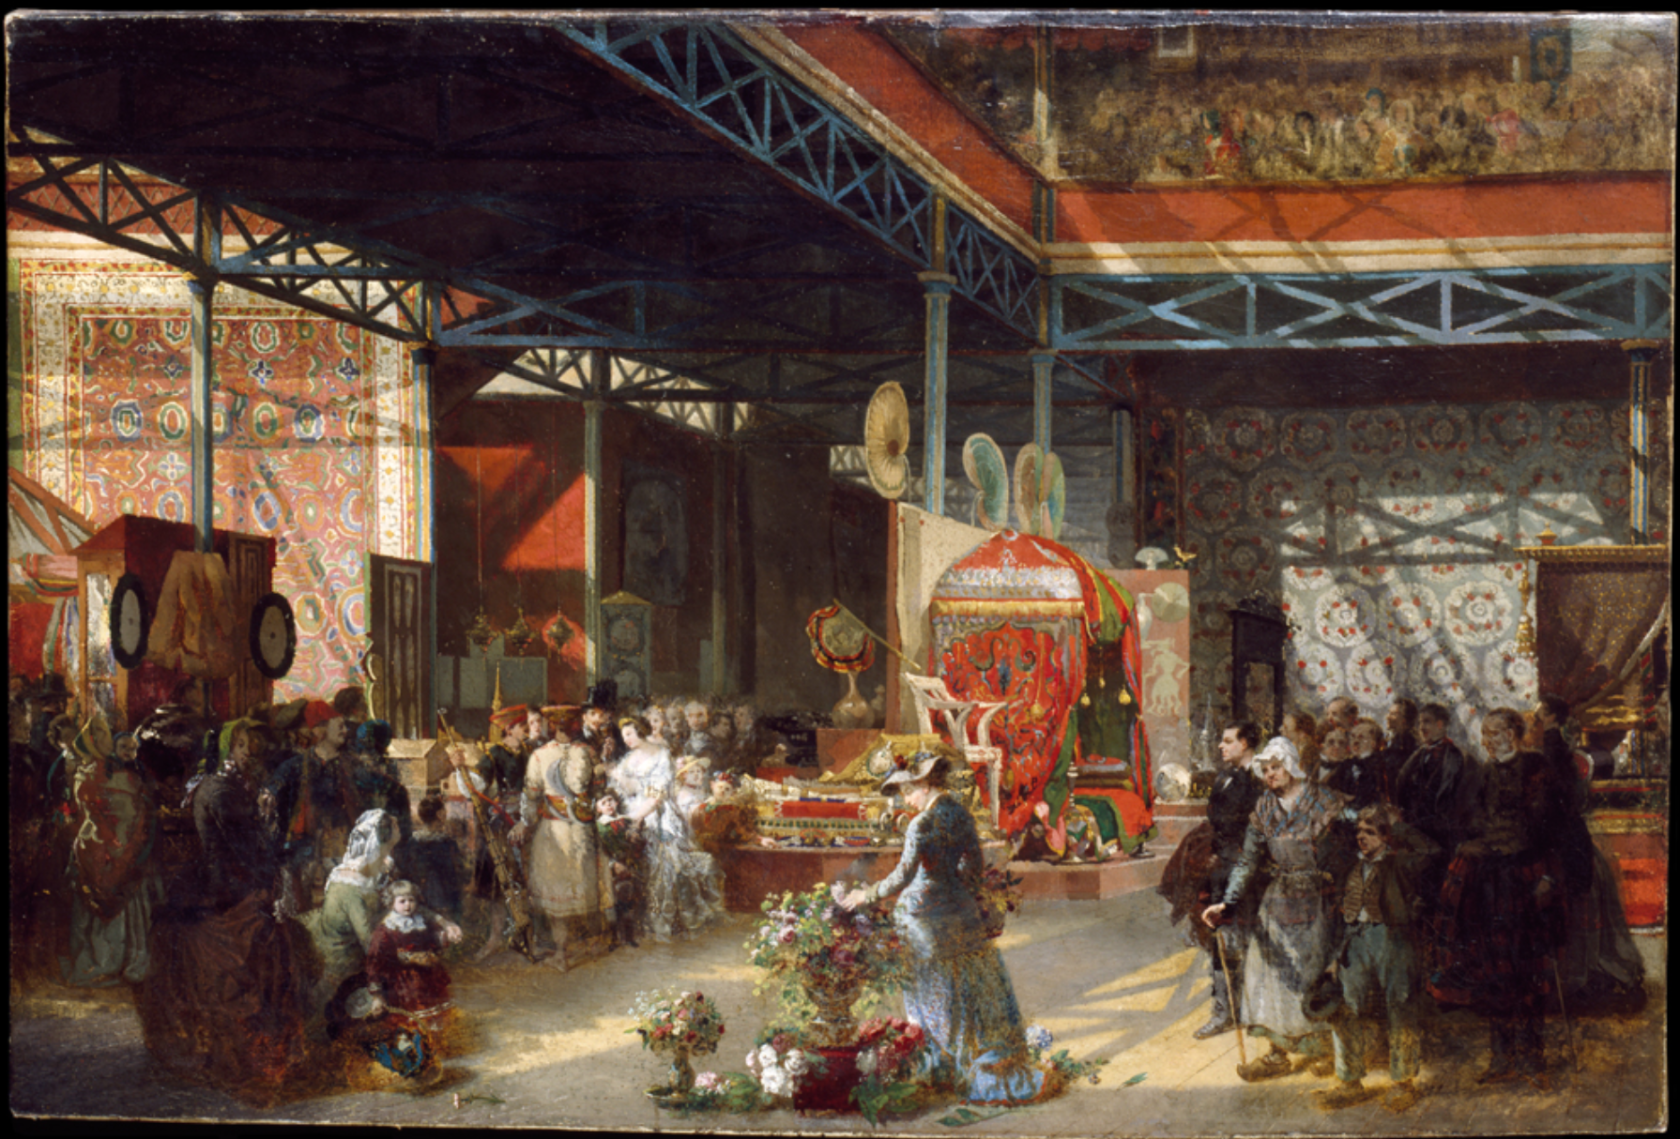 Queen Victoria, Prince Albert and three of their children at the Indian Pavilion of the Great Exhibition, oil painting, Prosper Lafaye, 1851-1881. Museum no. P.9-1966